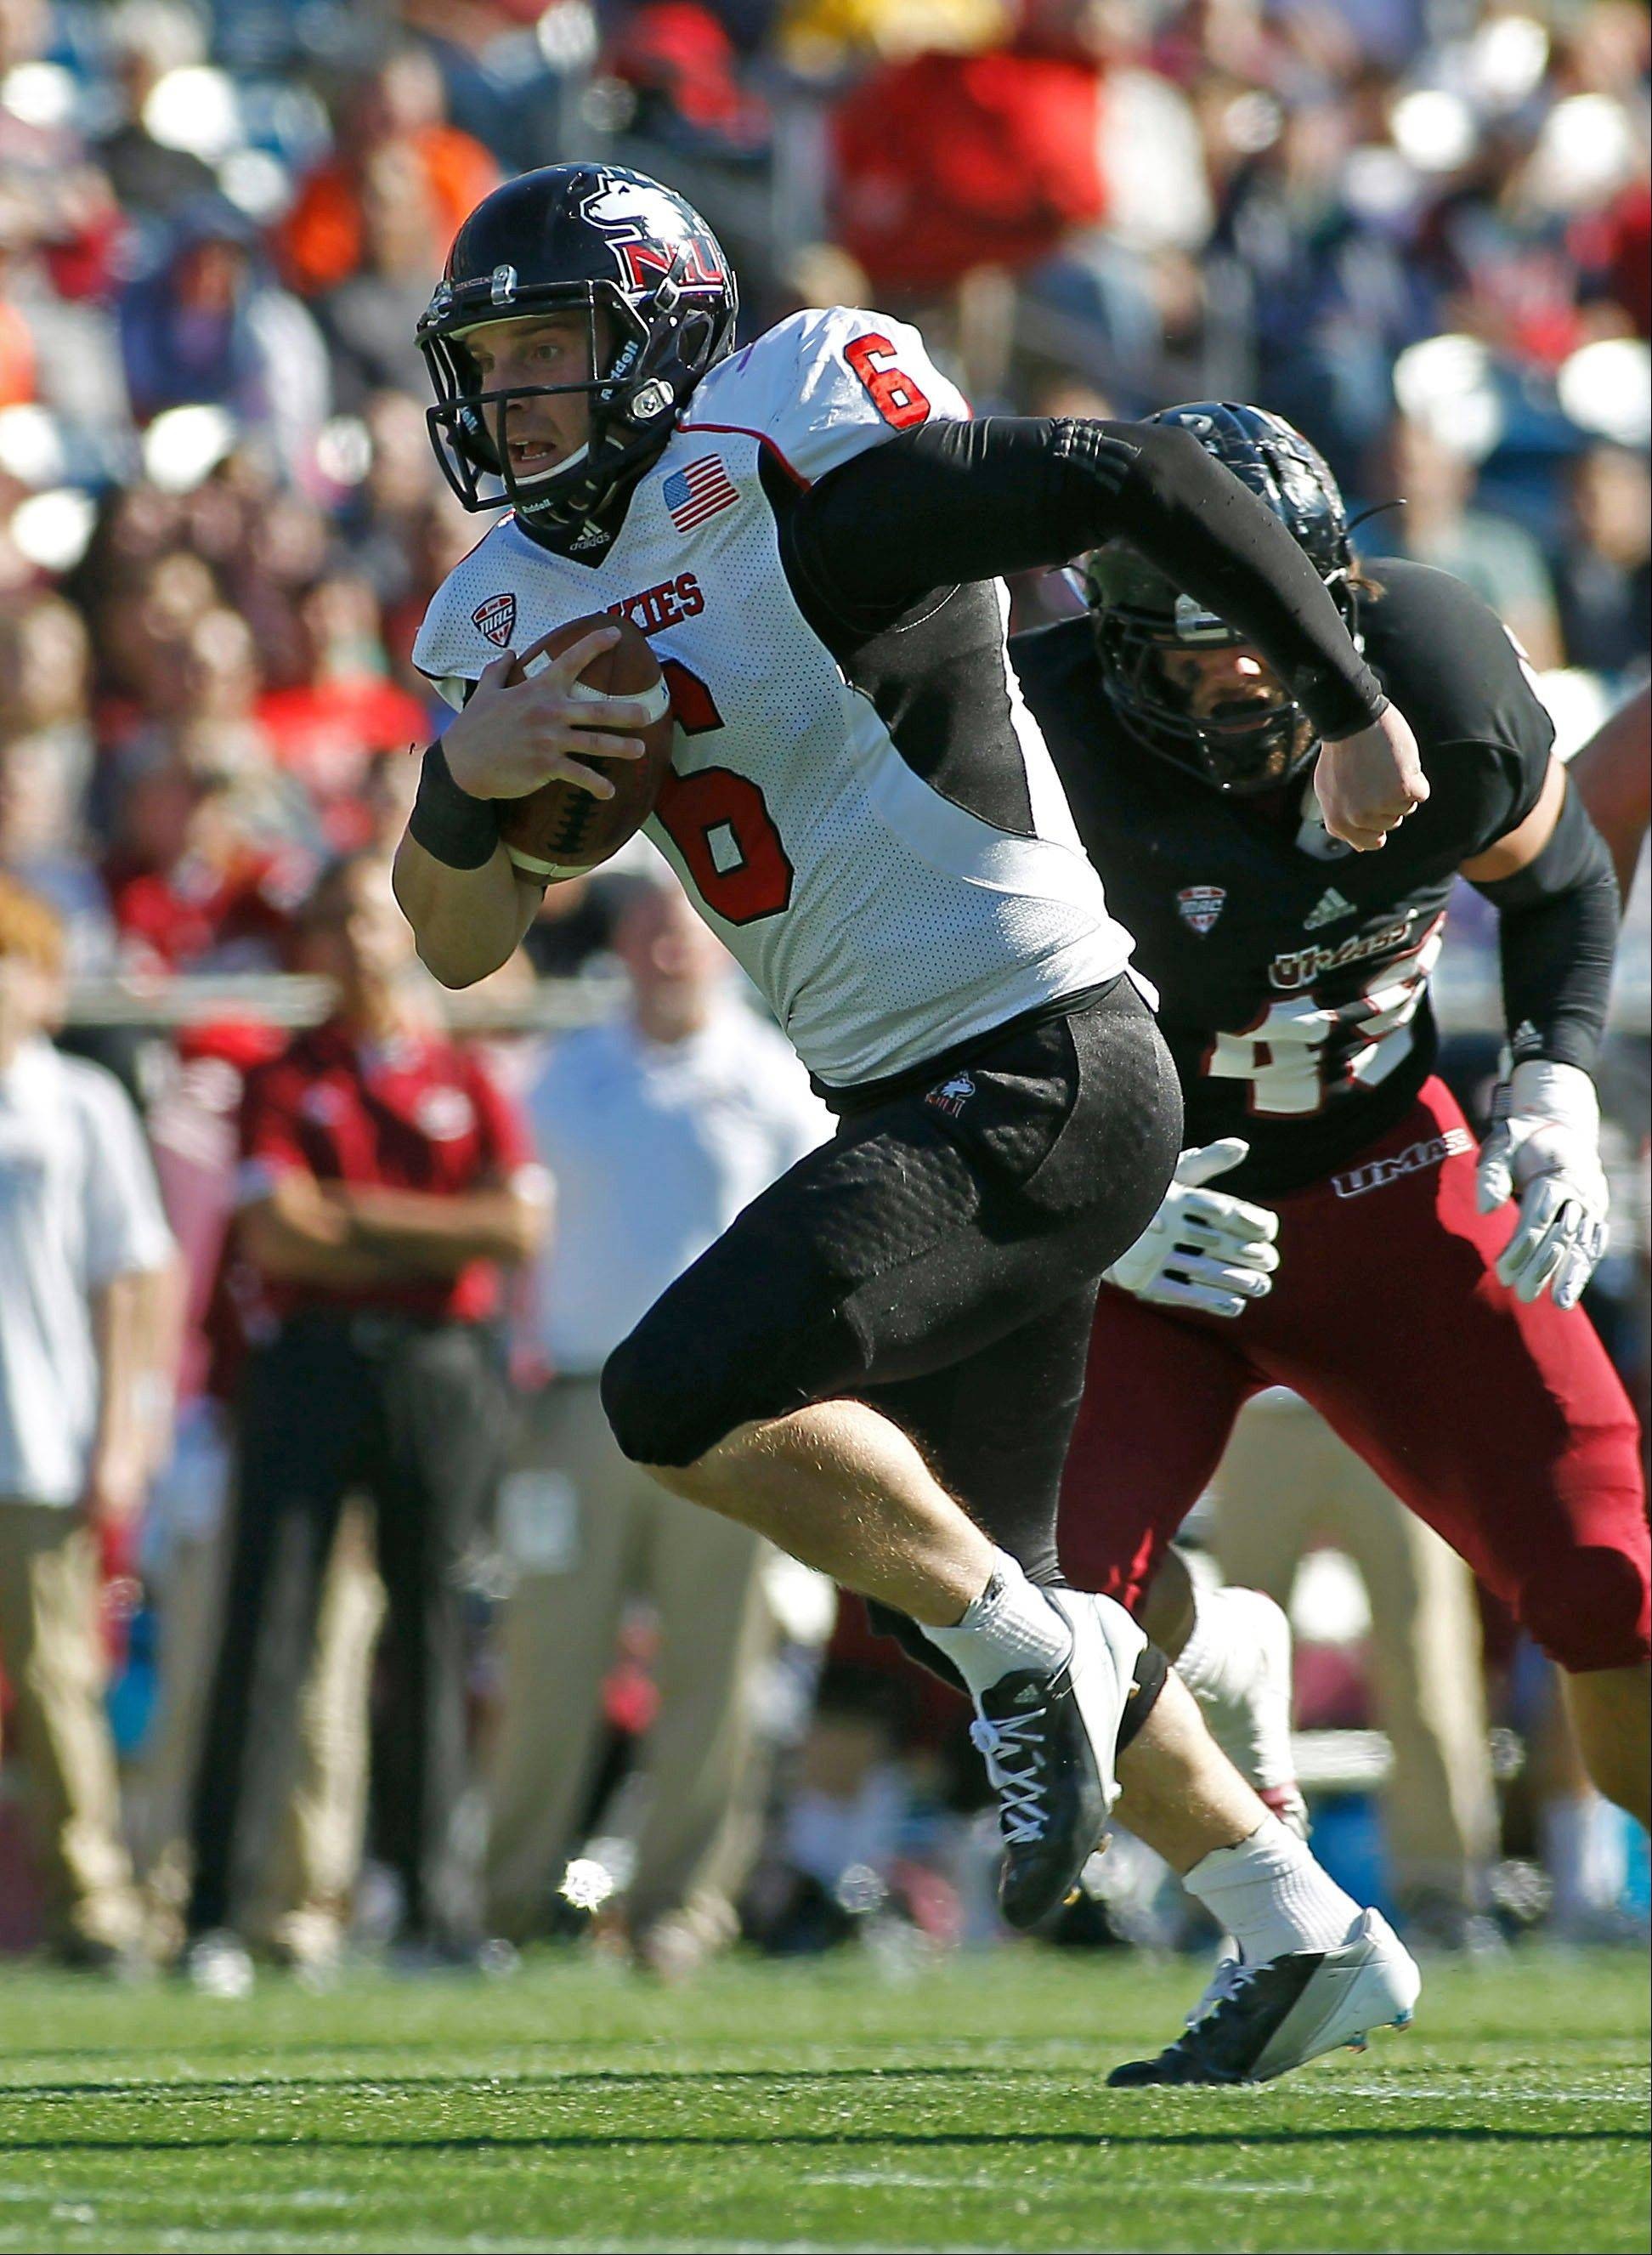 BCS? NIU's focus entirely on Ball State